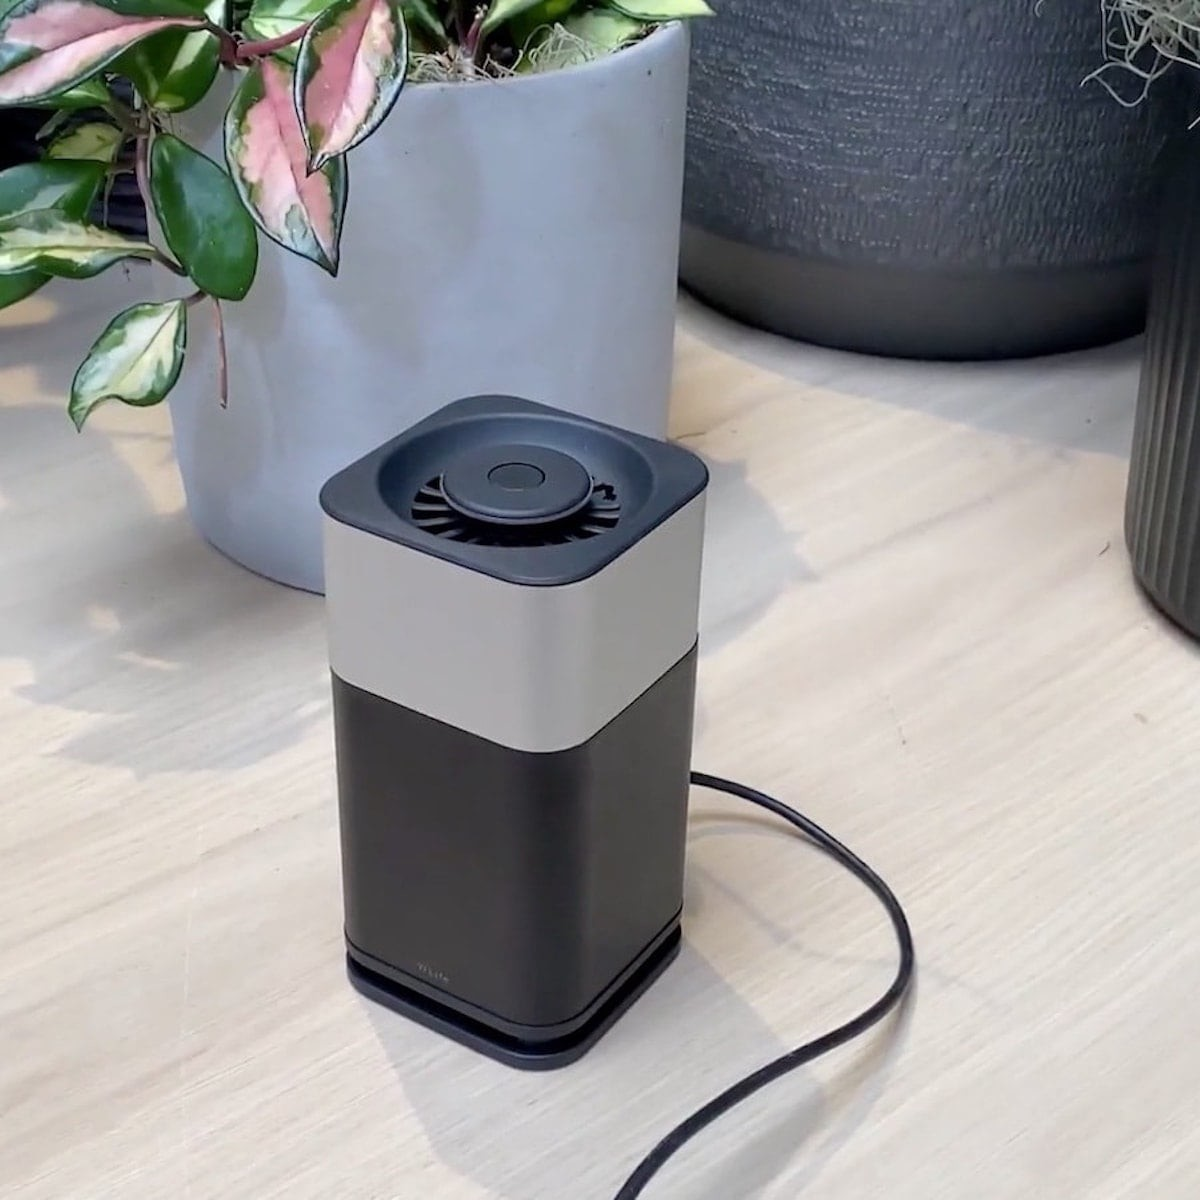 This high-tech purifier sanitizes the air in an eco-friendly, quiet way thumbnail